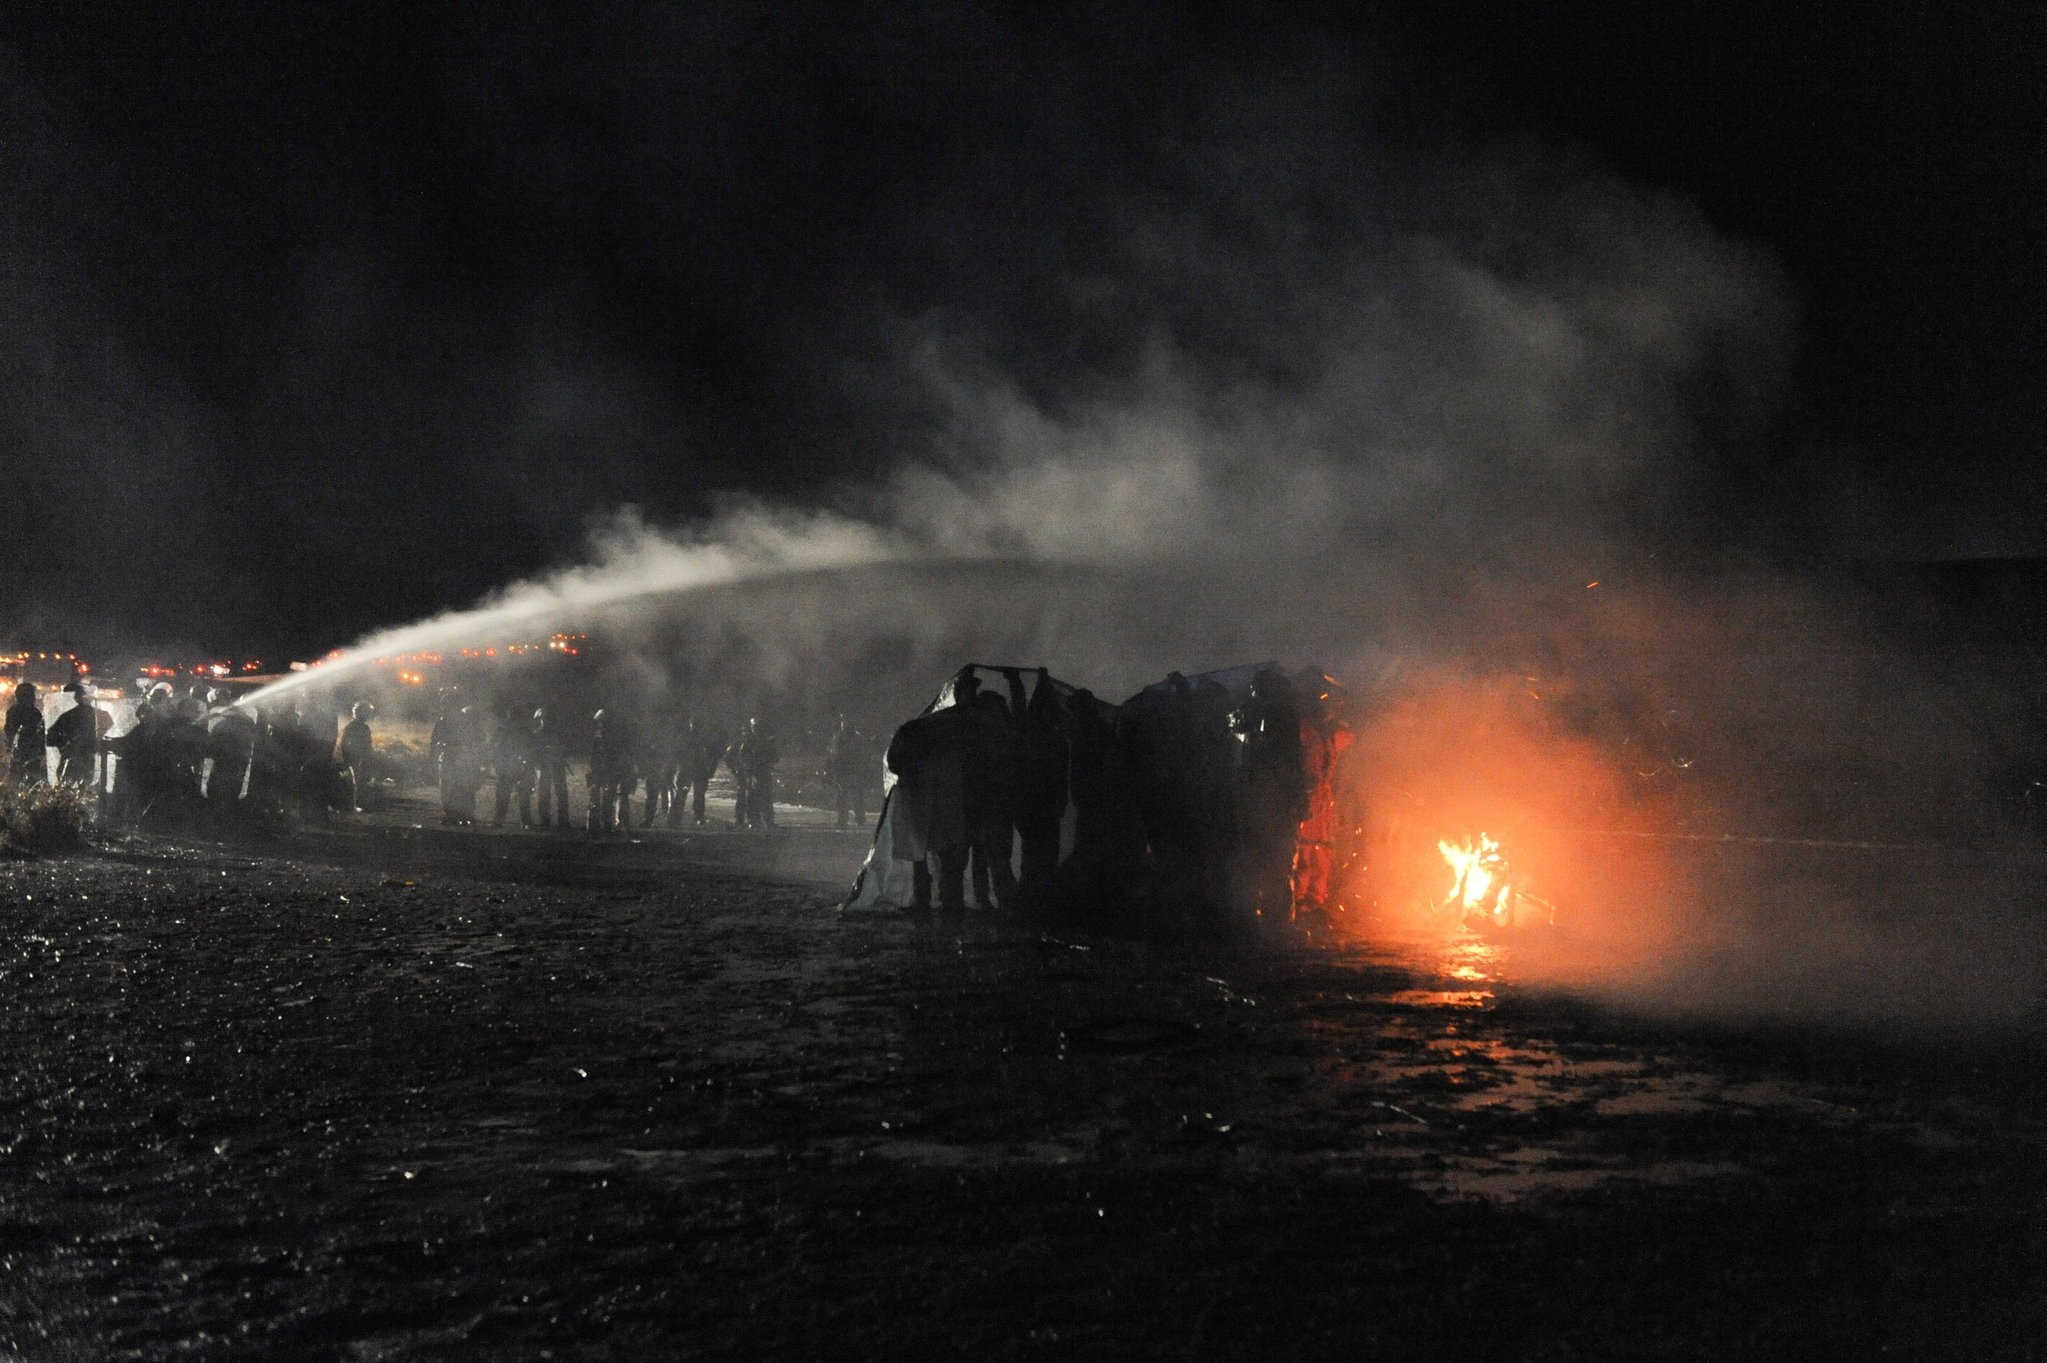 Police use a water cannon to put out a fire started by protesters during a protest against plans to pass the Dakota Access pipeline near the Standing Rock Indian Reservation. (REUTERS Photo)